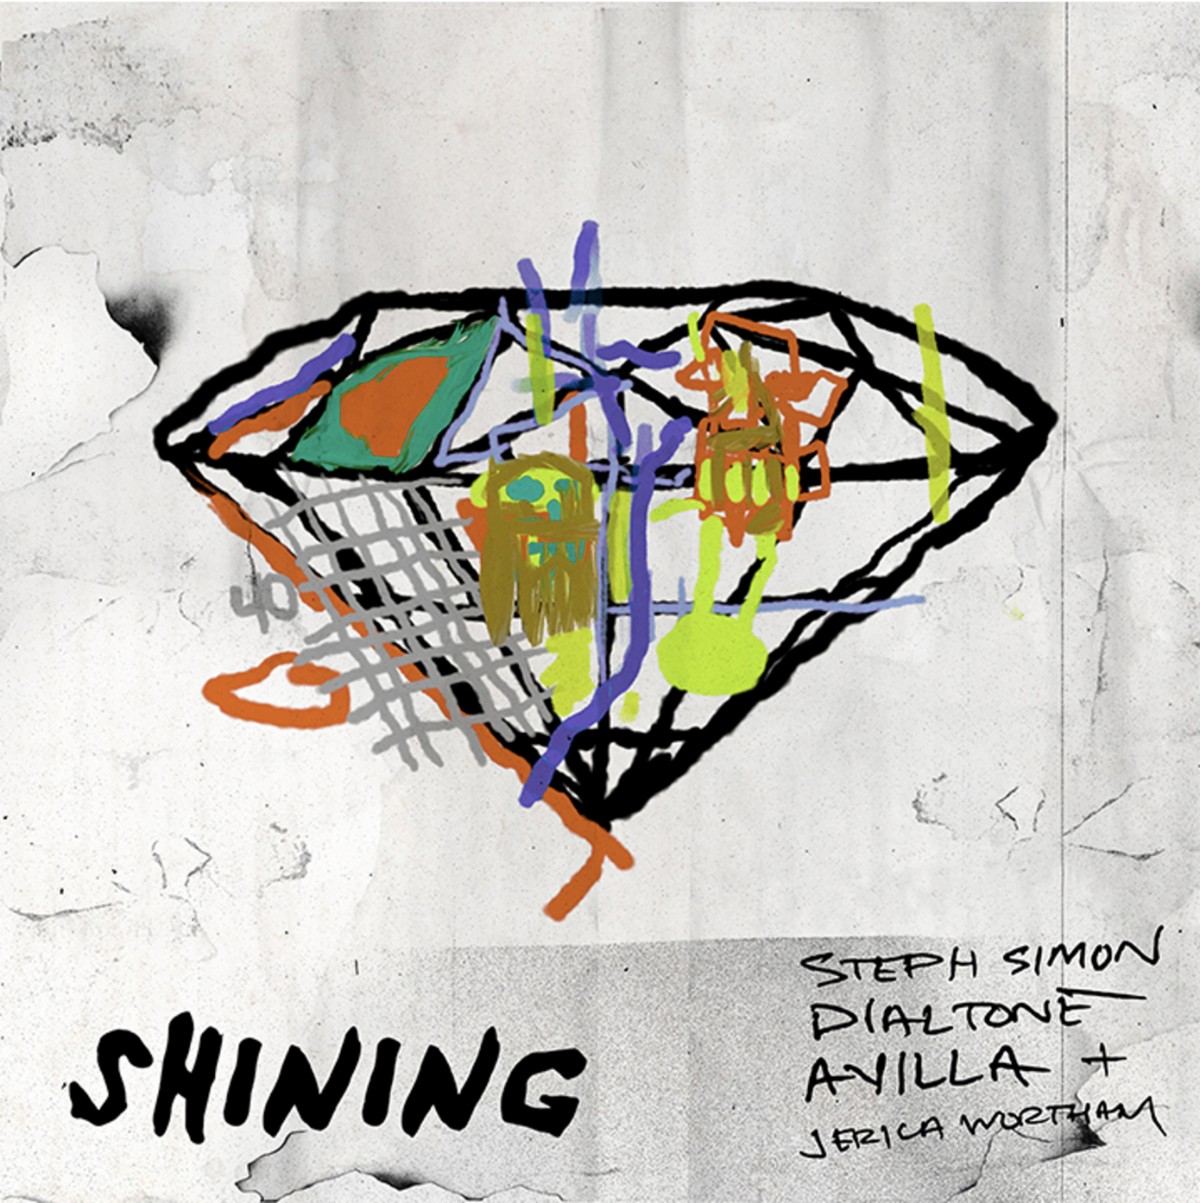 Shining artwork courtesy of Capitol Music Group and Motown Records for use by 360 Magazine